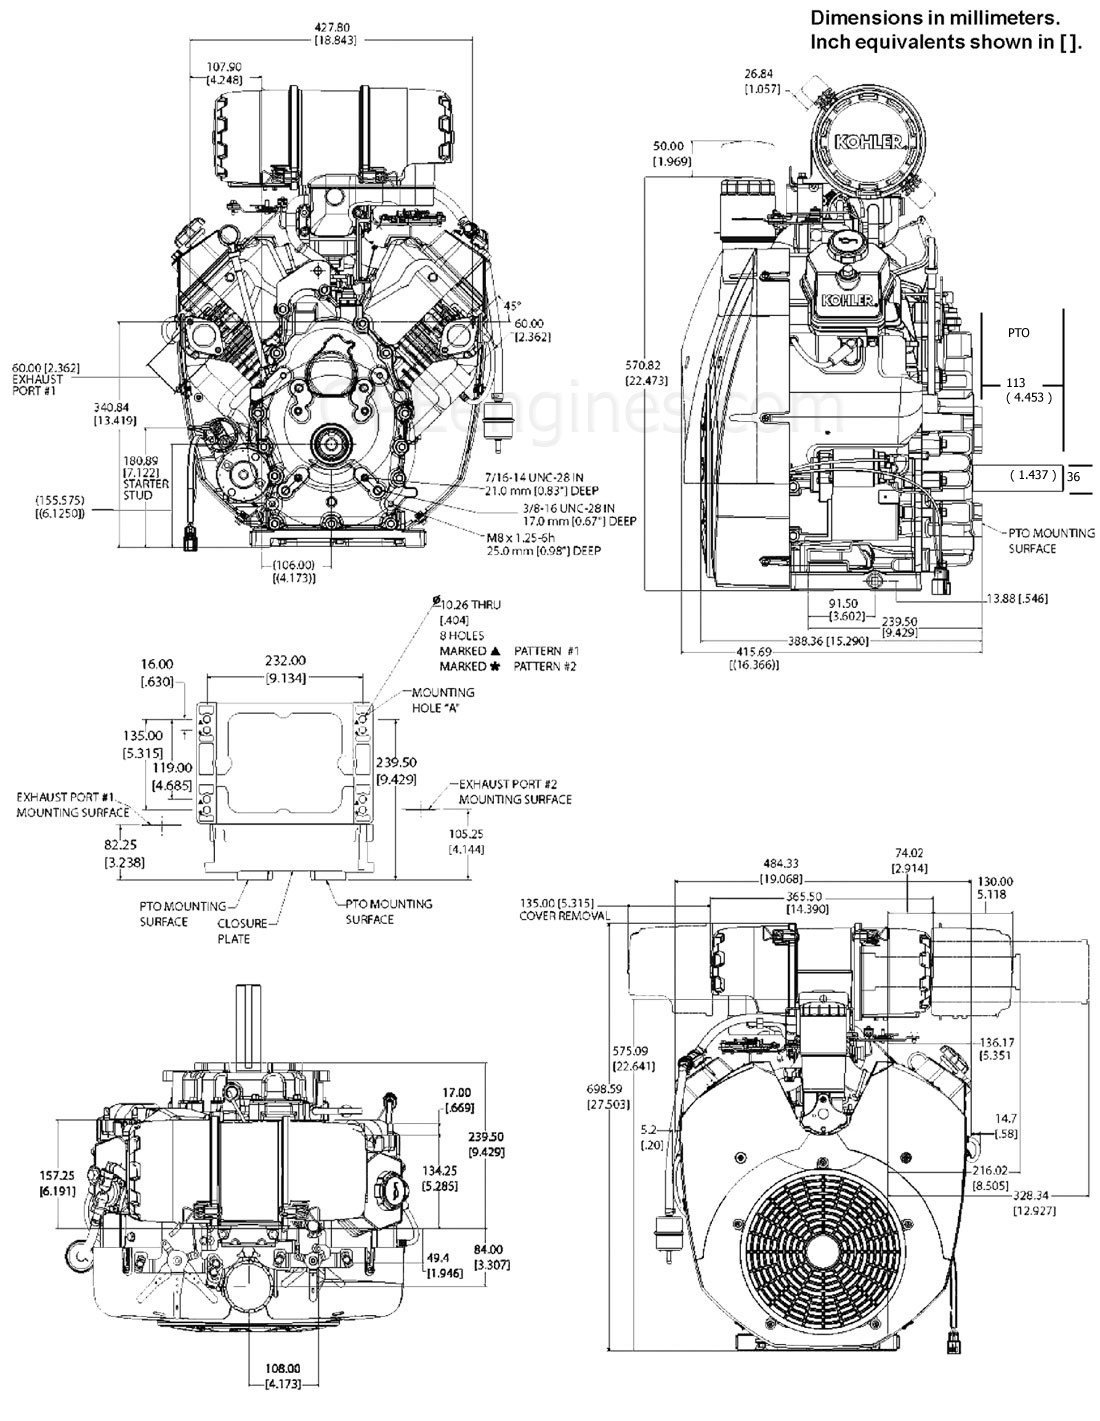 ch940 ch960 ch980 ch1000 drawings kohler engines and kohler ch940 960 980 1000 drawing file